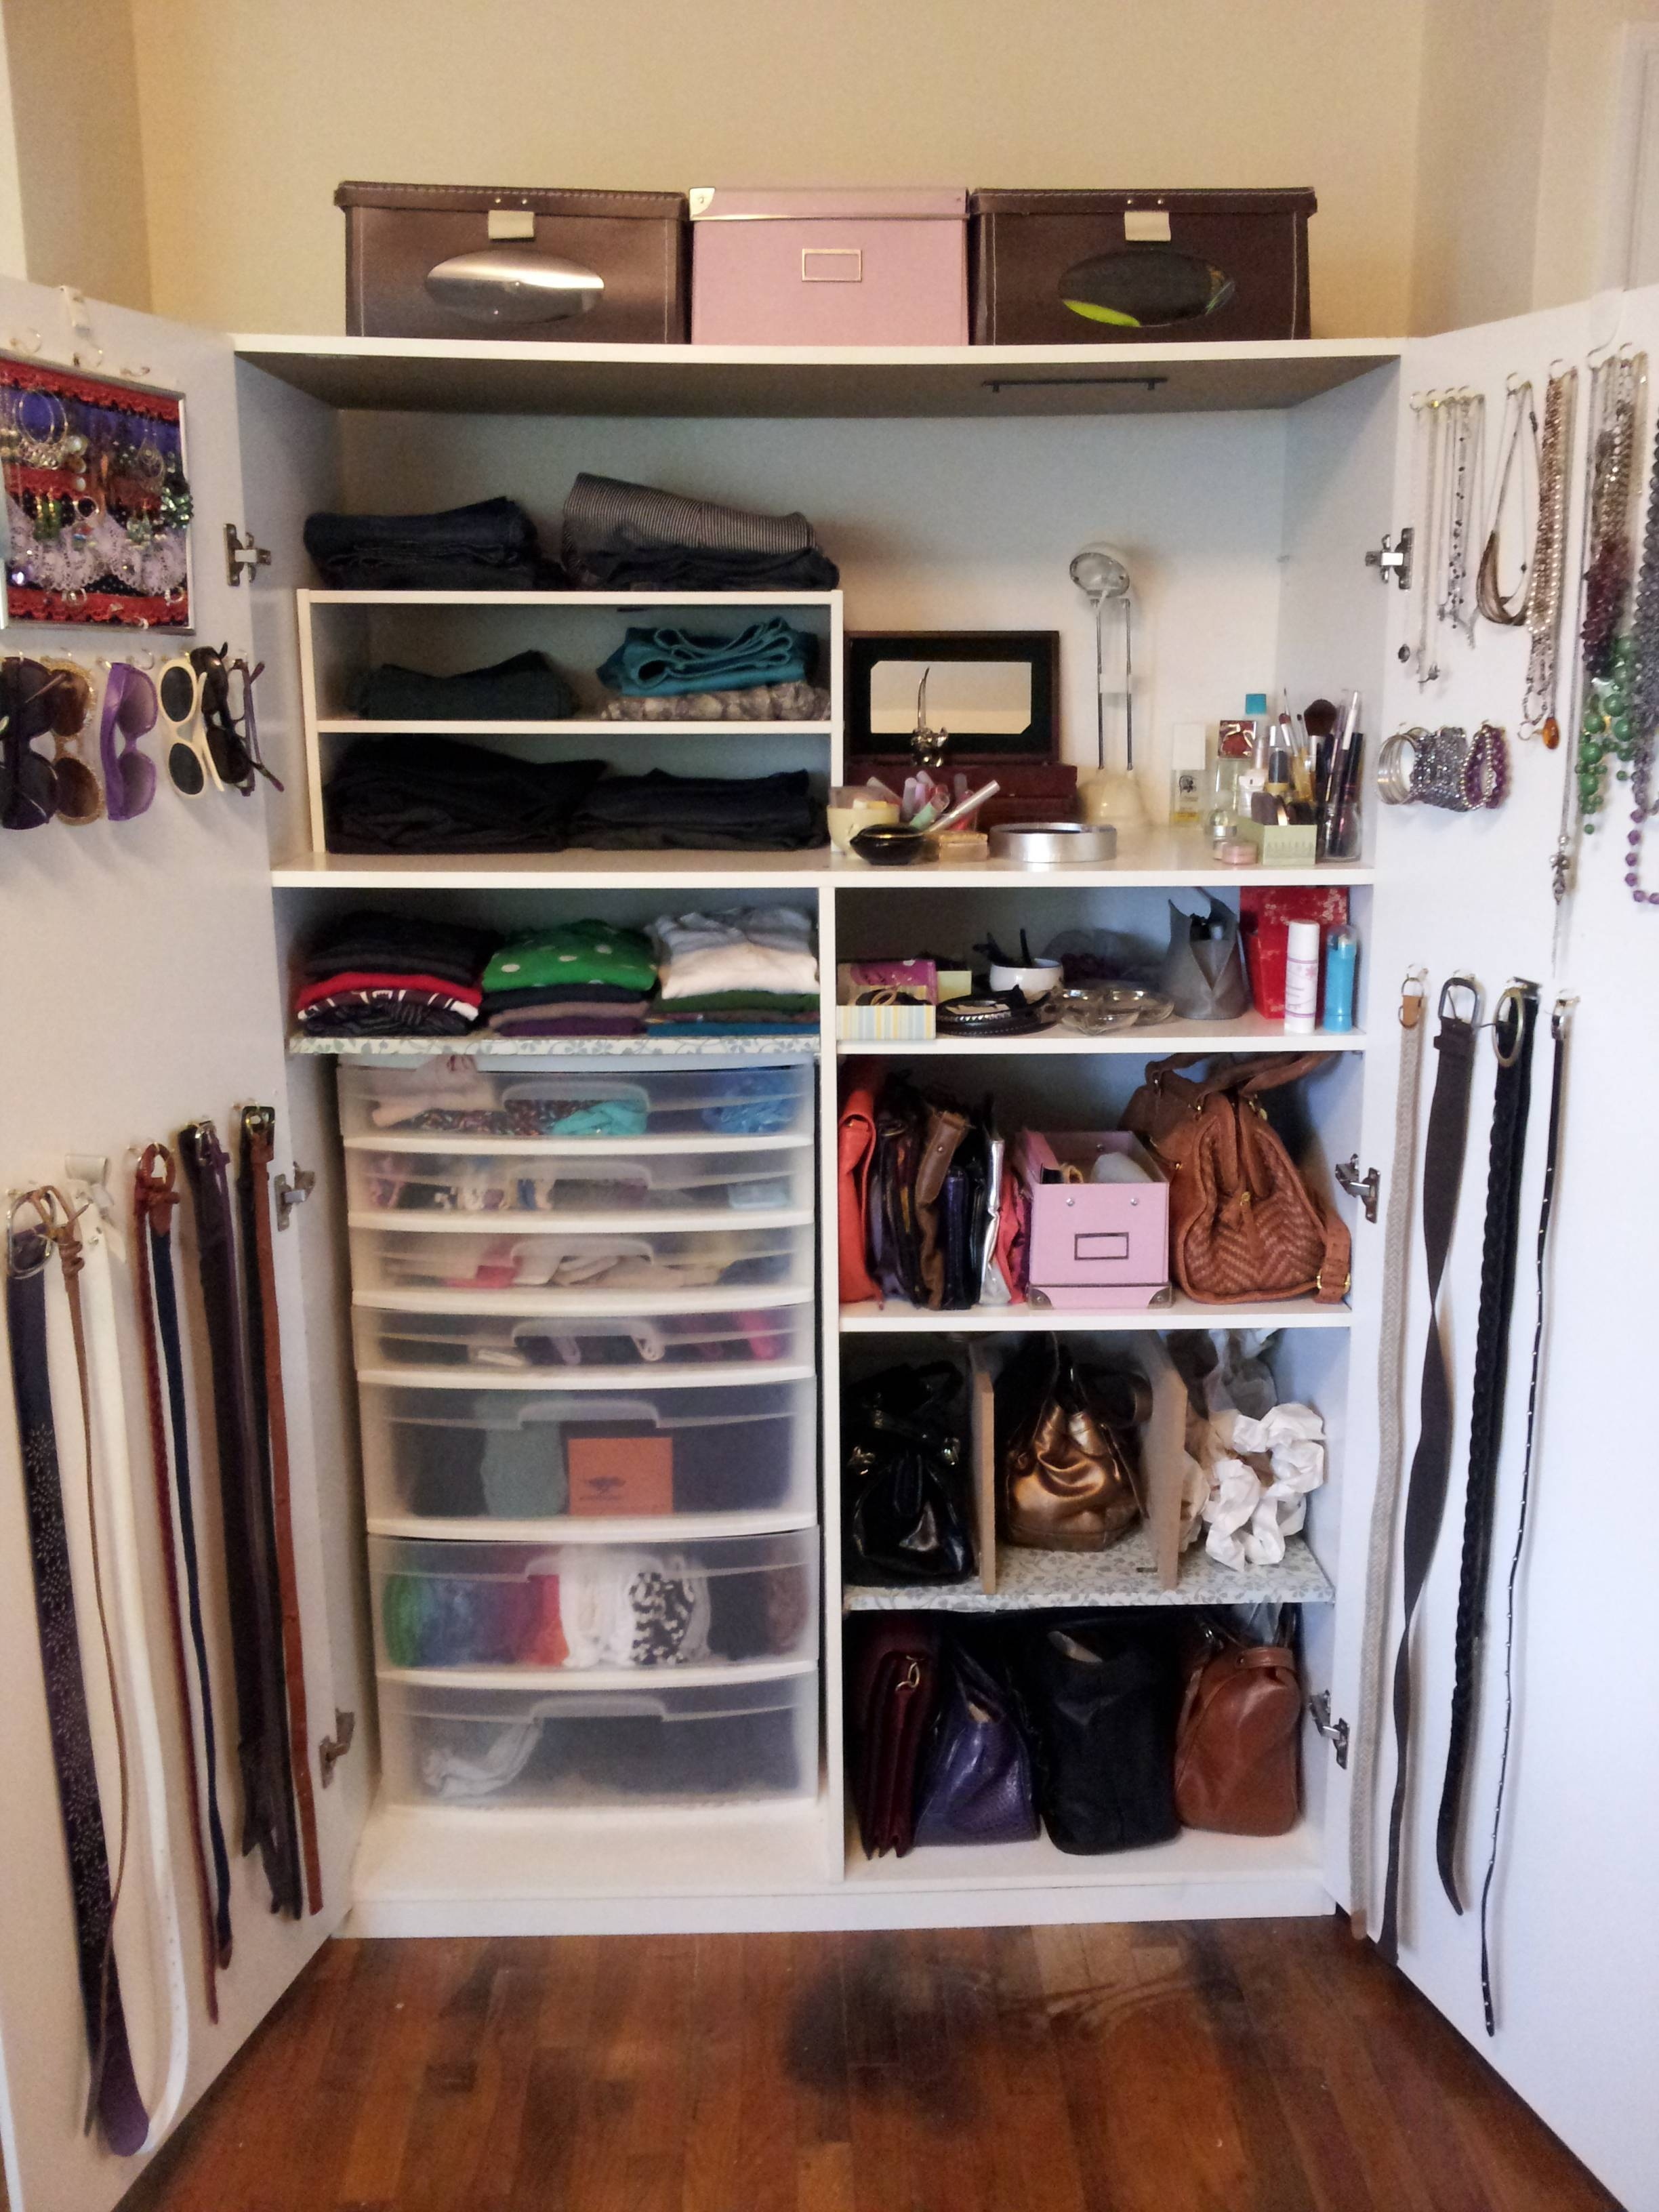 How To Organize A Lot Of Clothing In Very Little Closet Space throughout Bedroom Wardrobe Storages (Image 22 of 30)